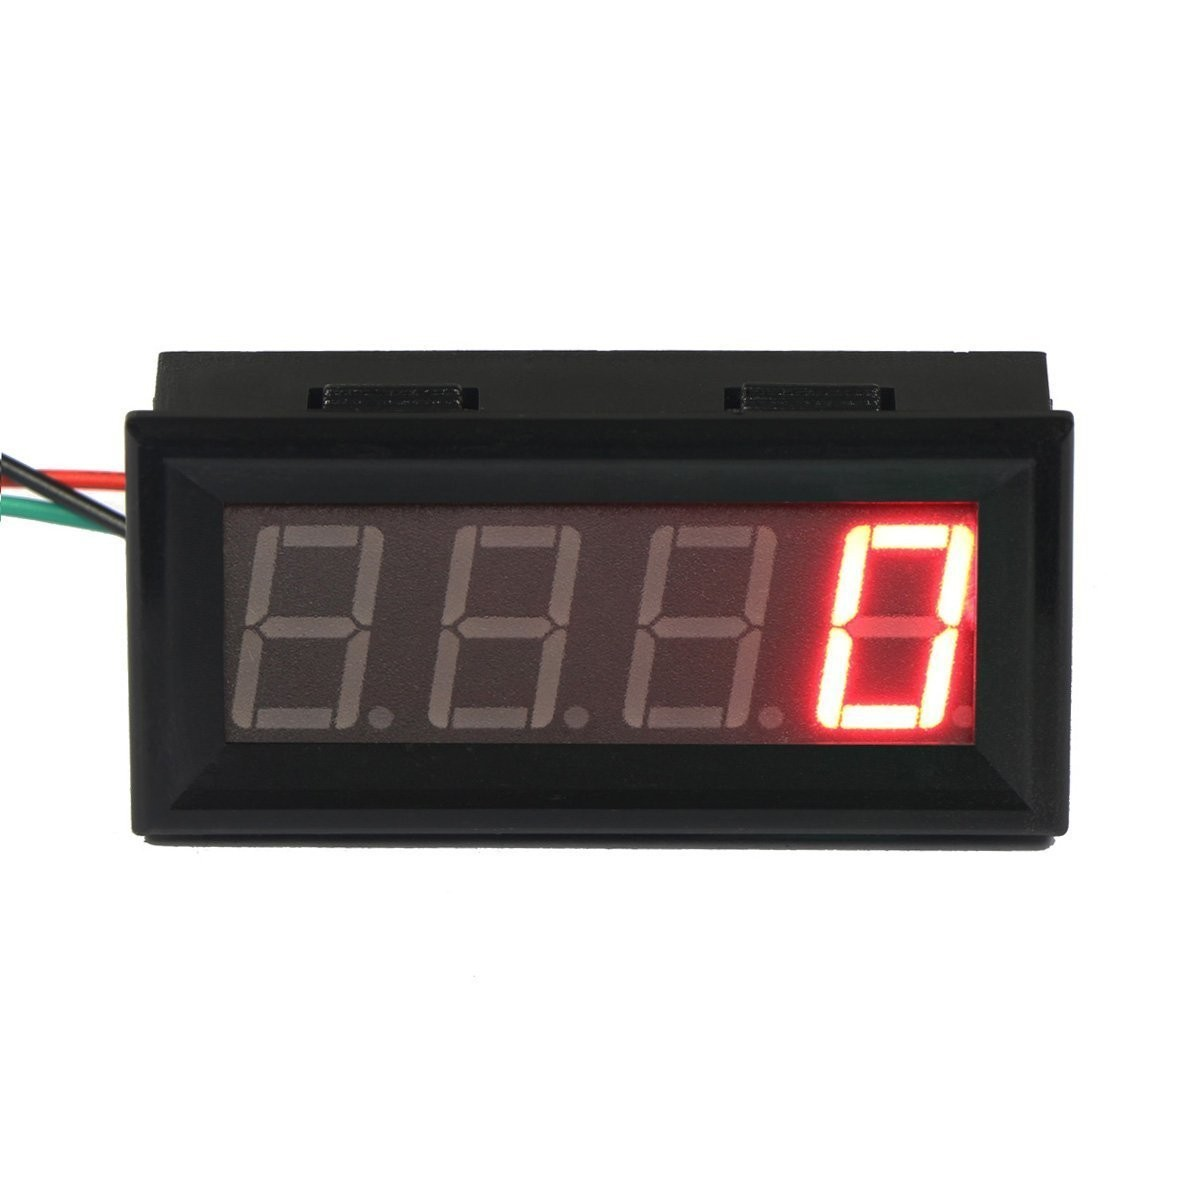 Riorand 056 Digital Motor Led Tachometer Rpm Speed Measure Gauge Circuit Bar Zoom